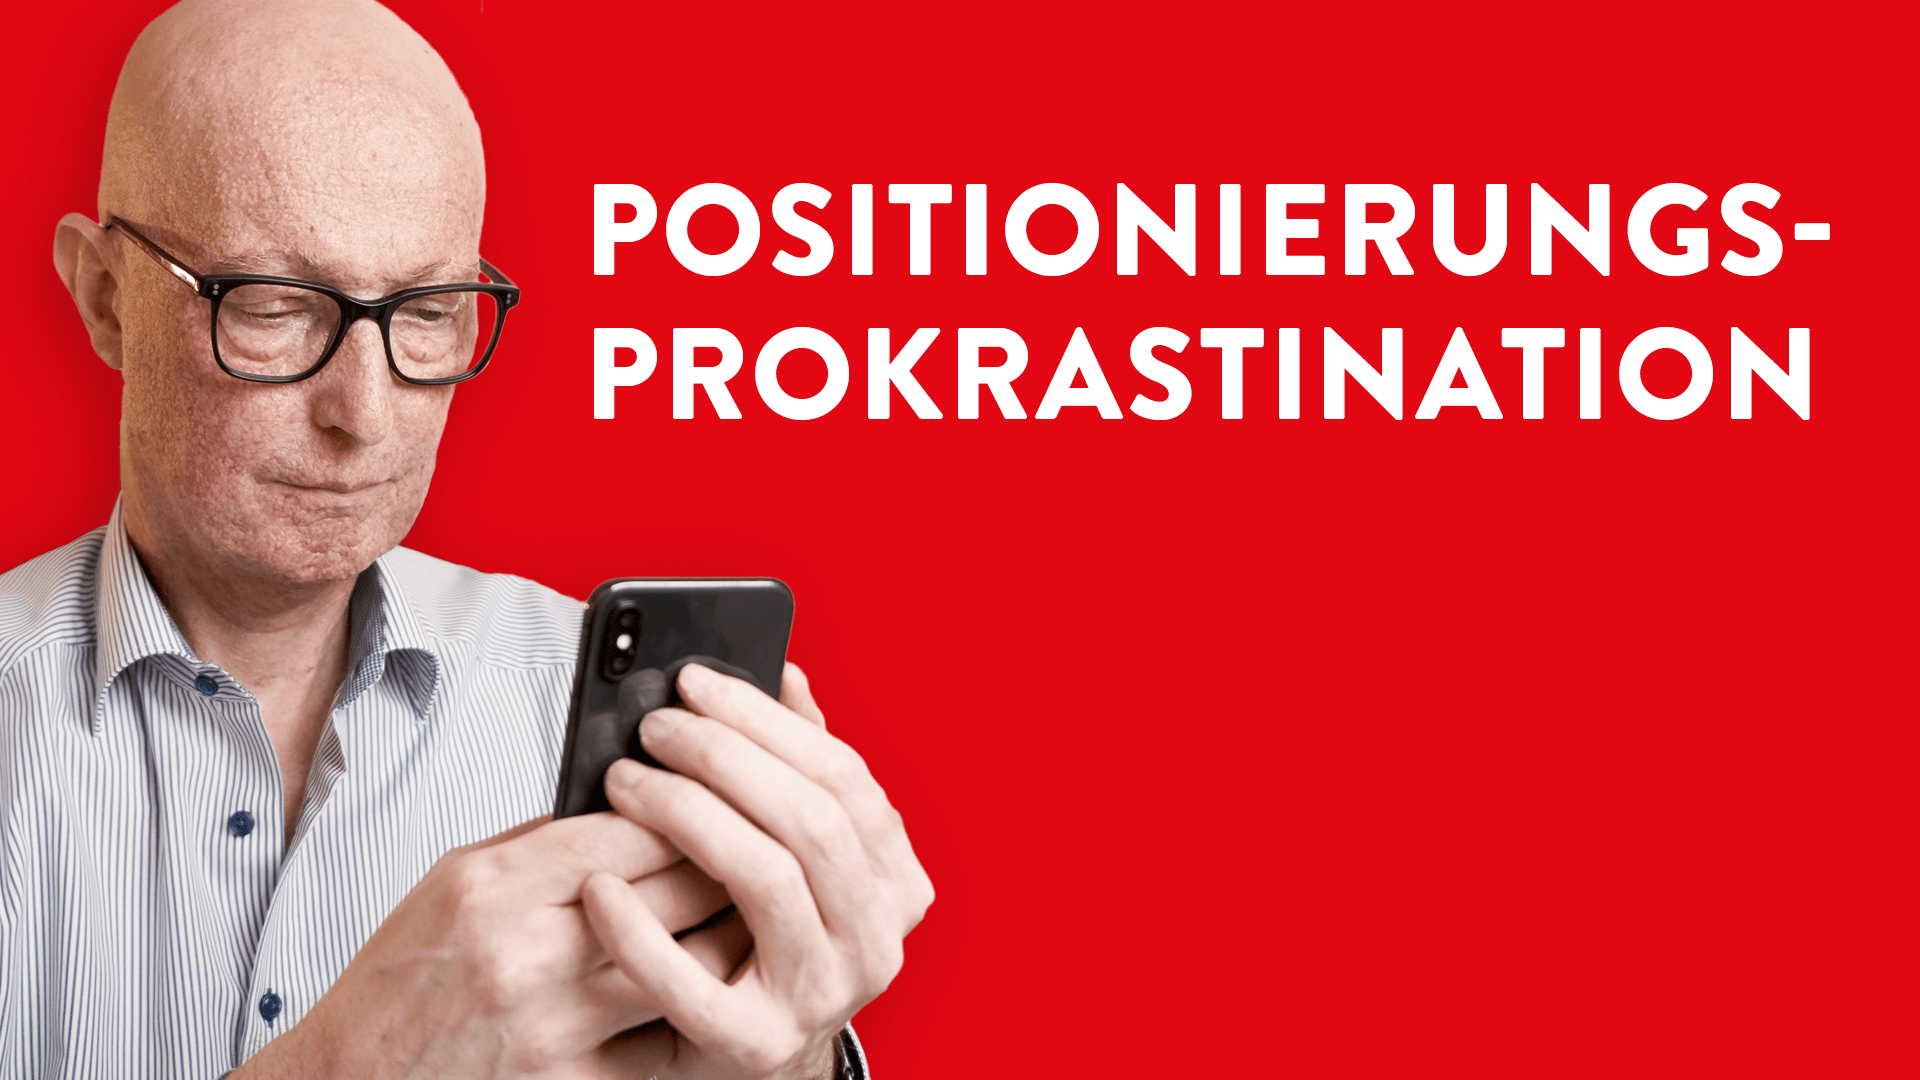 Positionierungs-Prokrastination